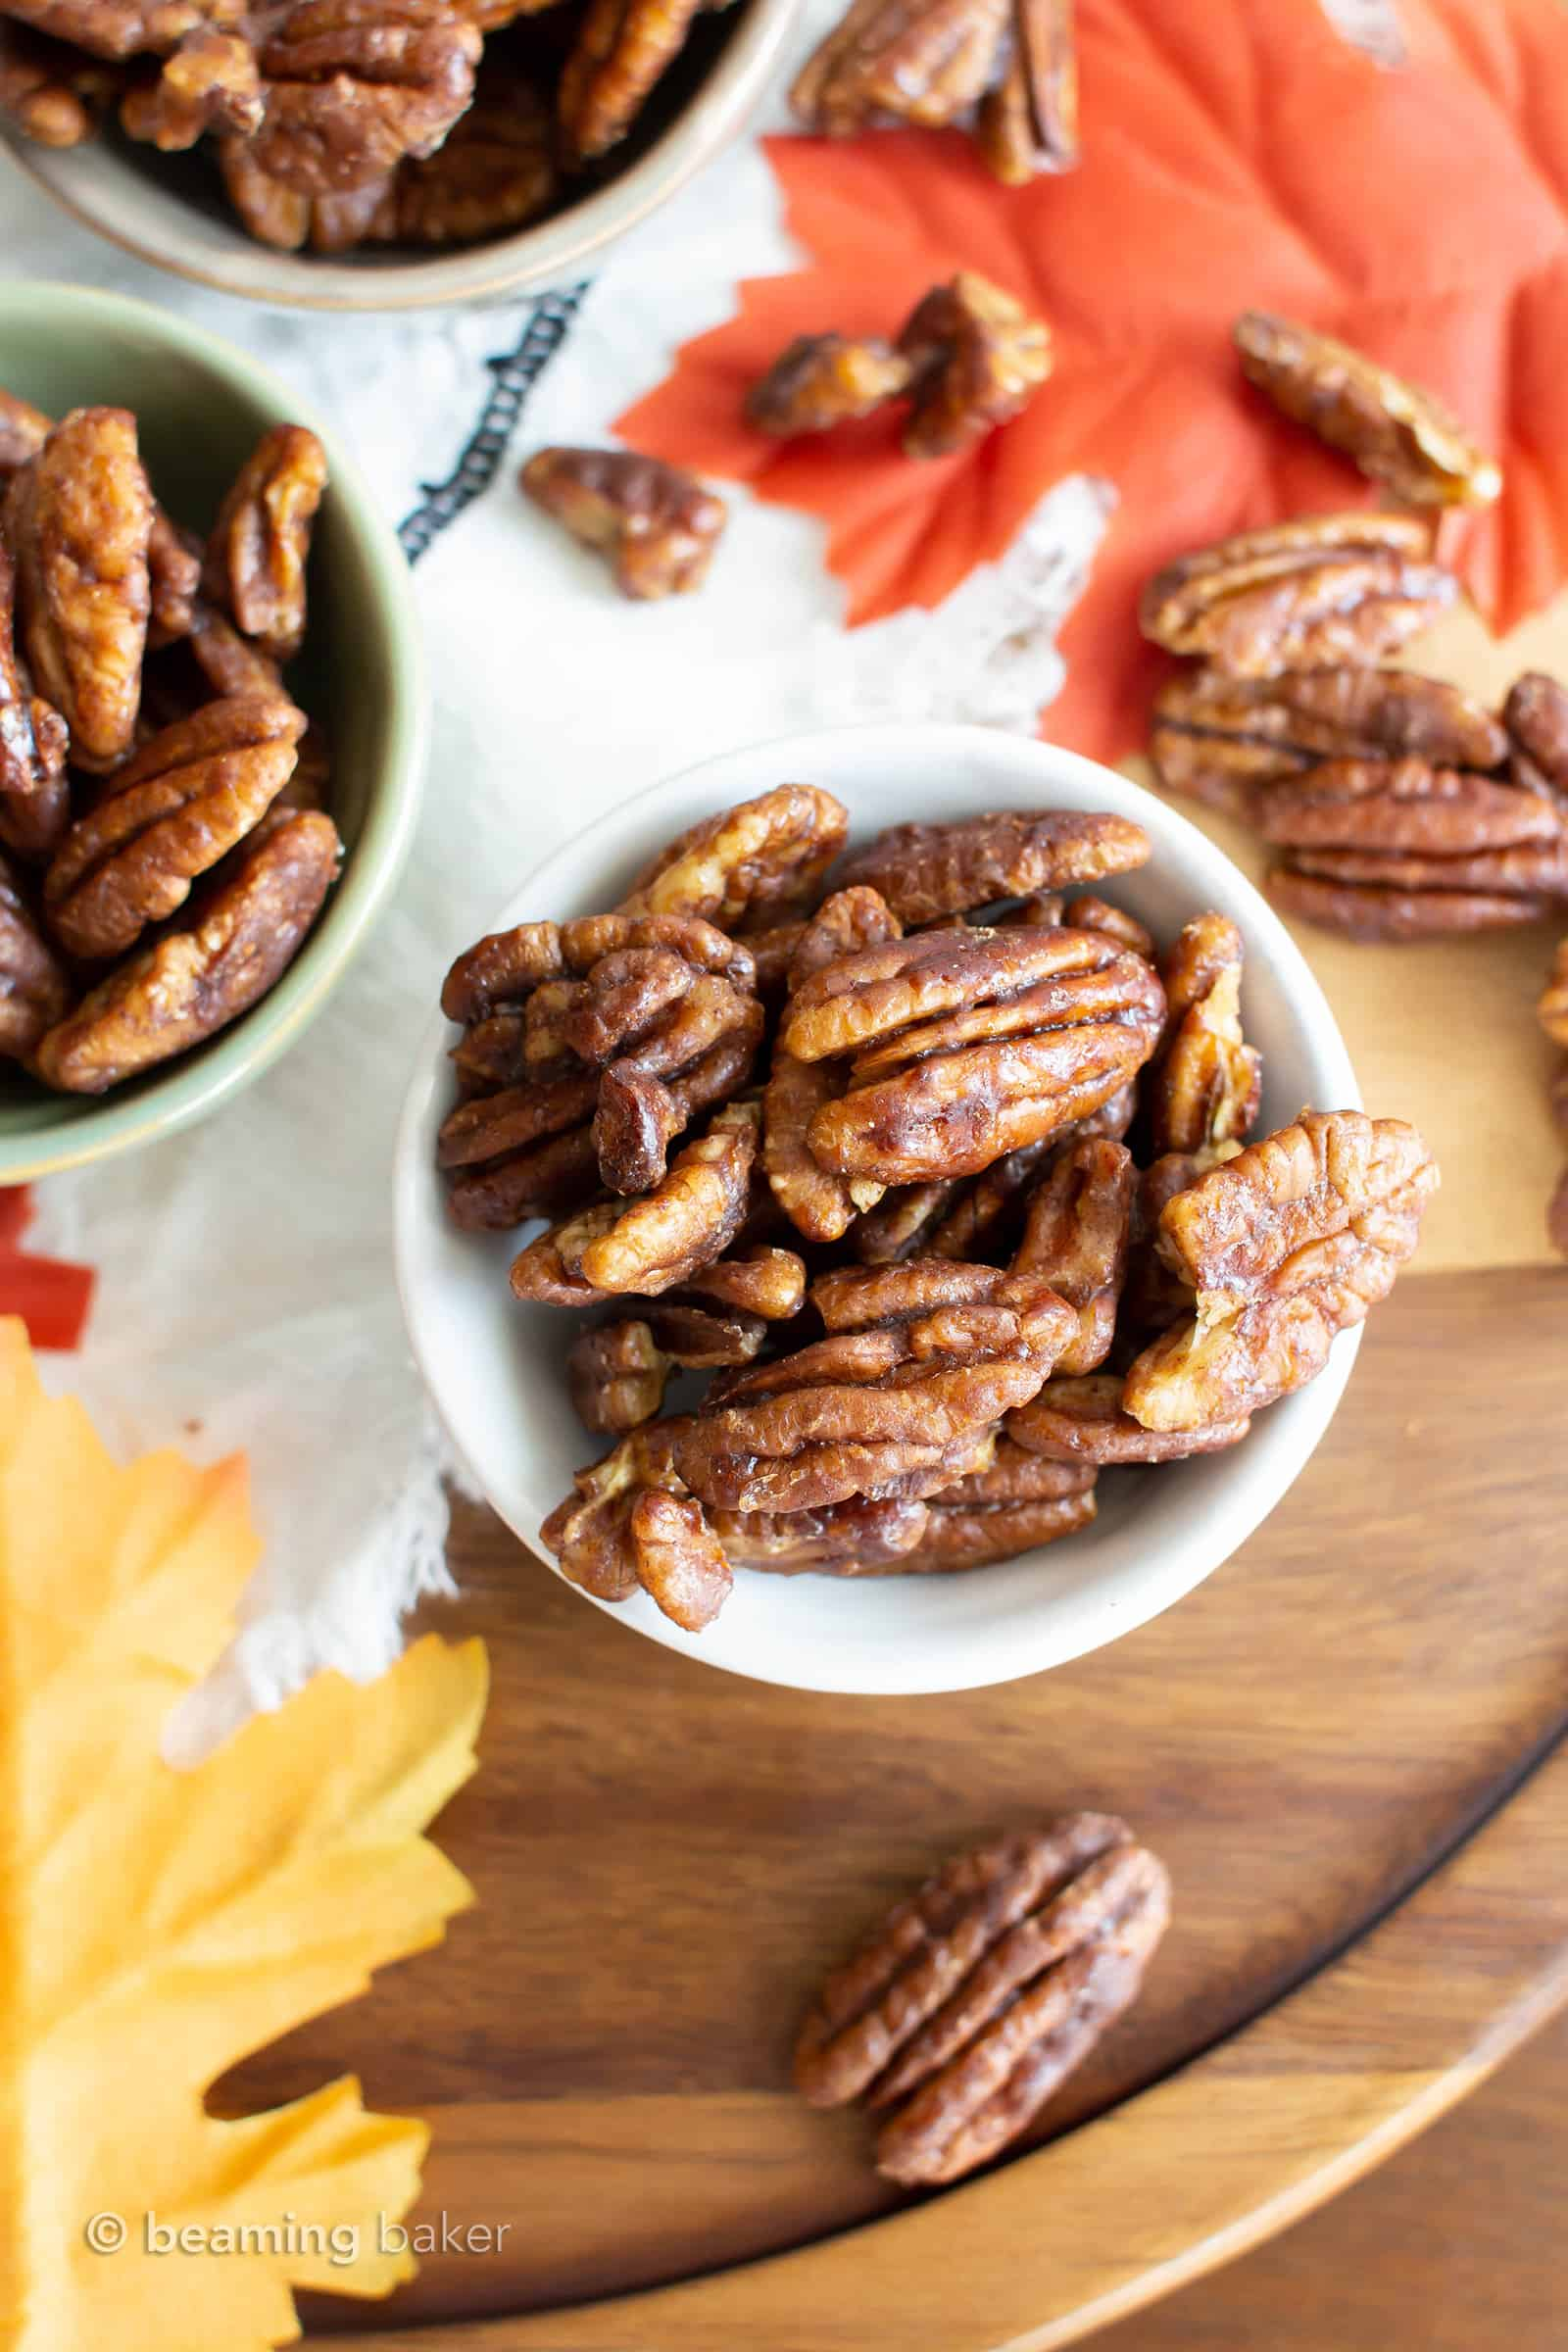 Skillet Roasted Maple Cinnamon Pecans: this 5 minute maple pecans recipe is quick & easy! The ultimate maple roasted pecans with cinnamon & coconut sugar! #Paleo #Snacks #Pecans #Maple | Recipe at BeamingBaker.com